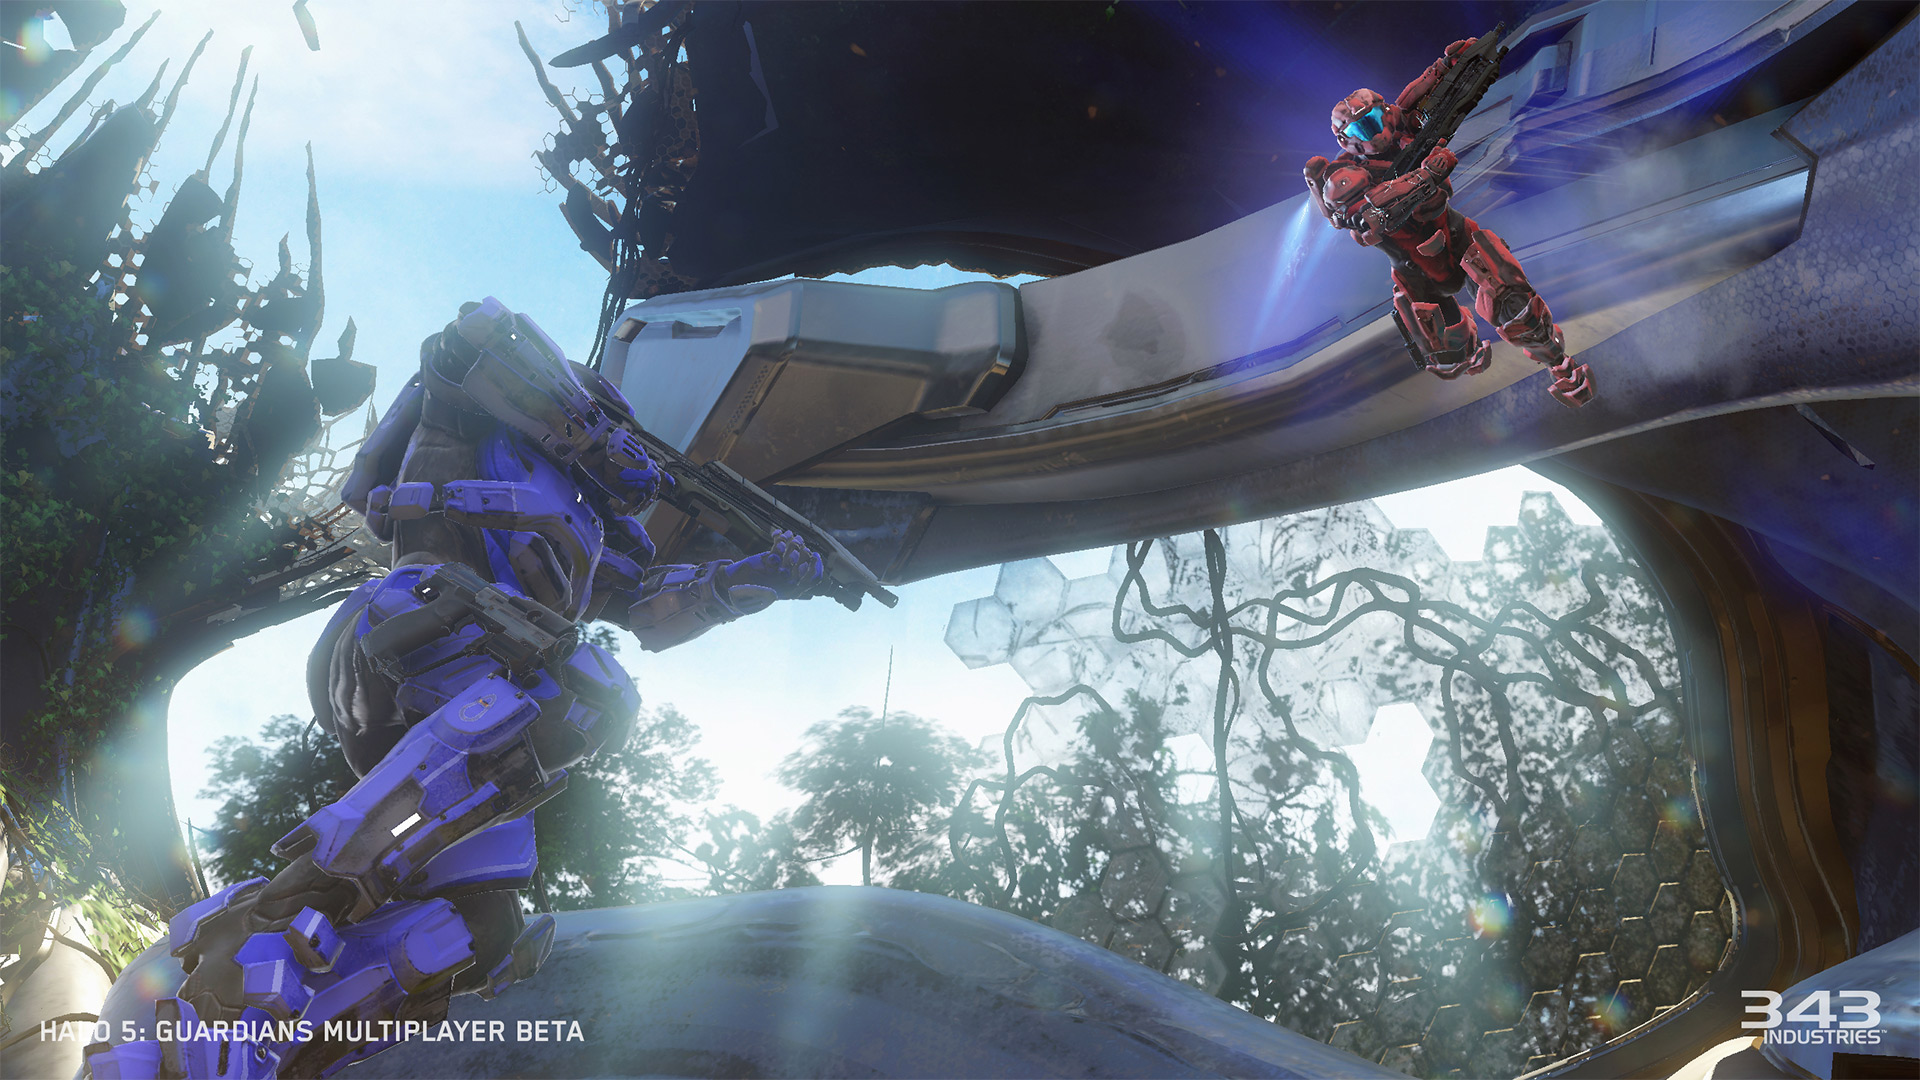 Halo 5's New Multiplayer Mode Breakout Is Now Playable - CINEMABLEND